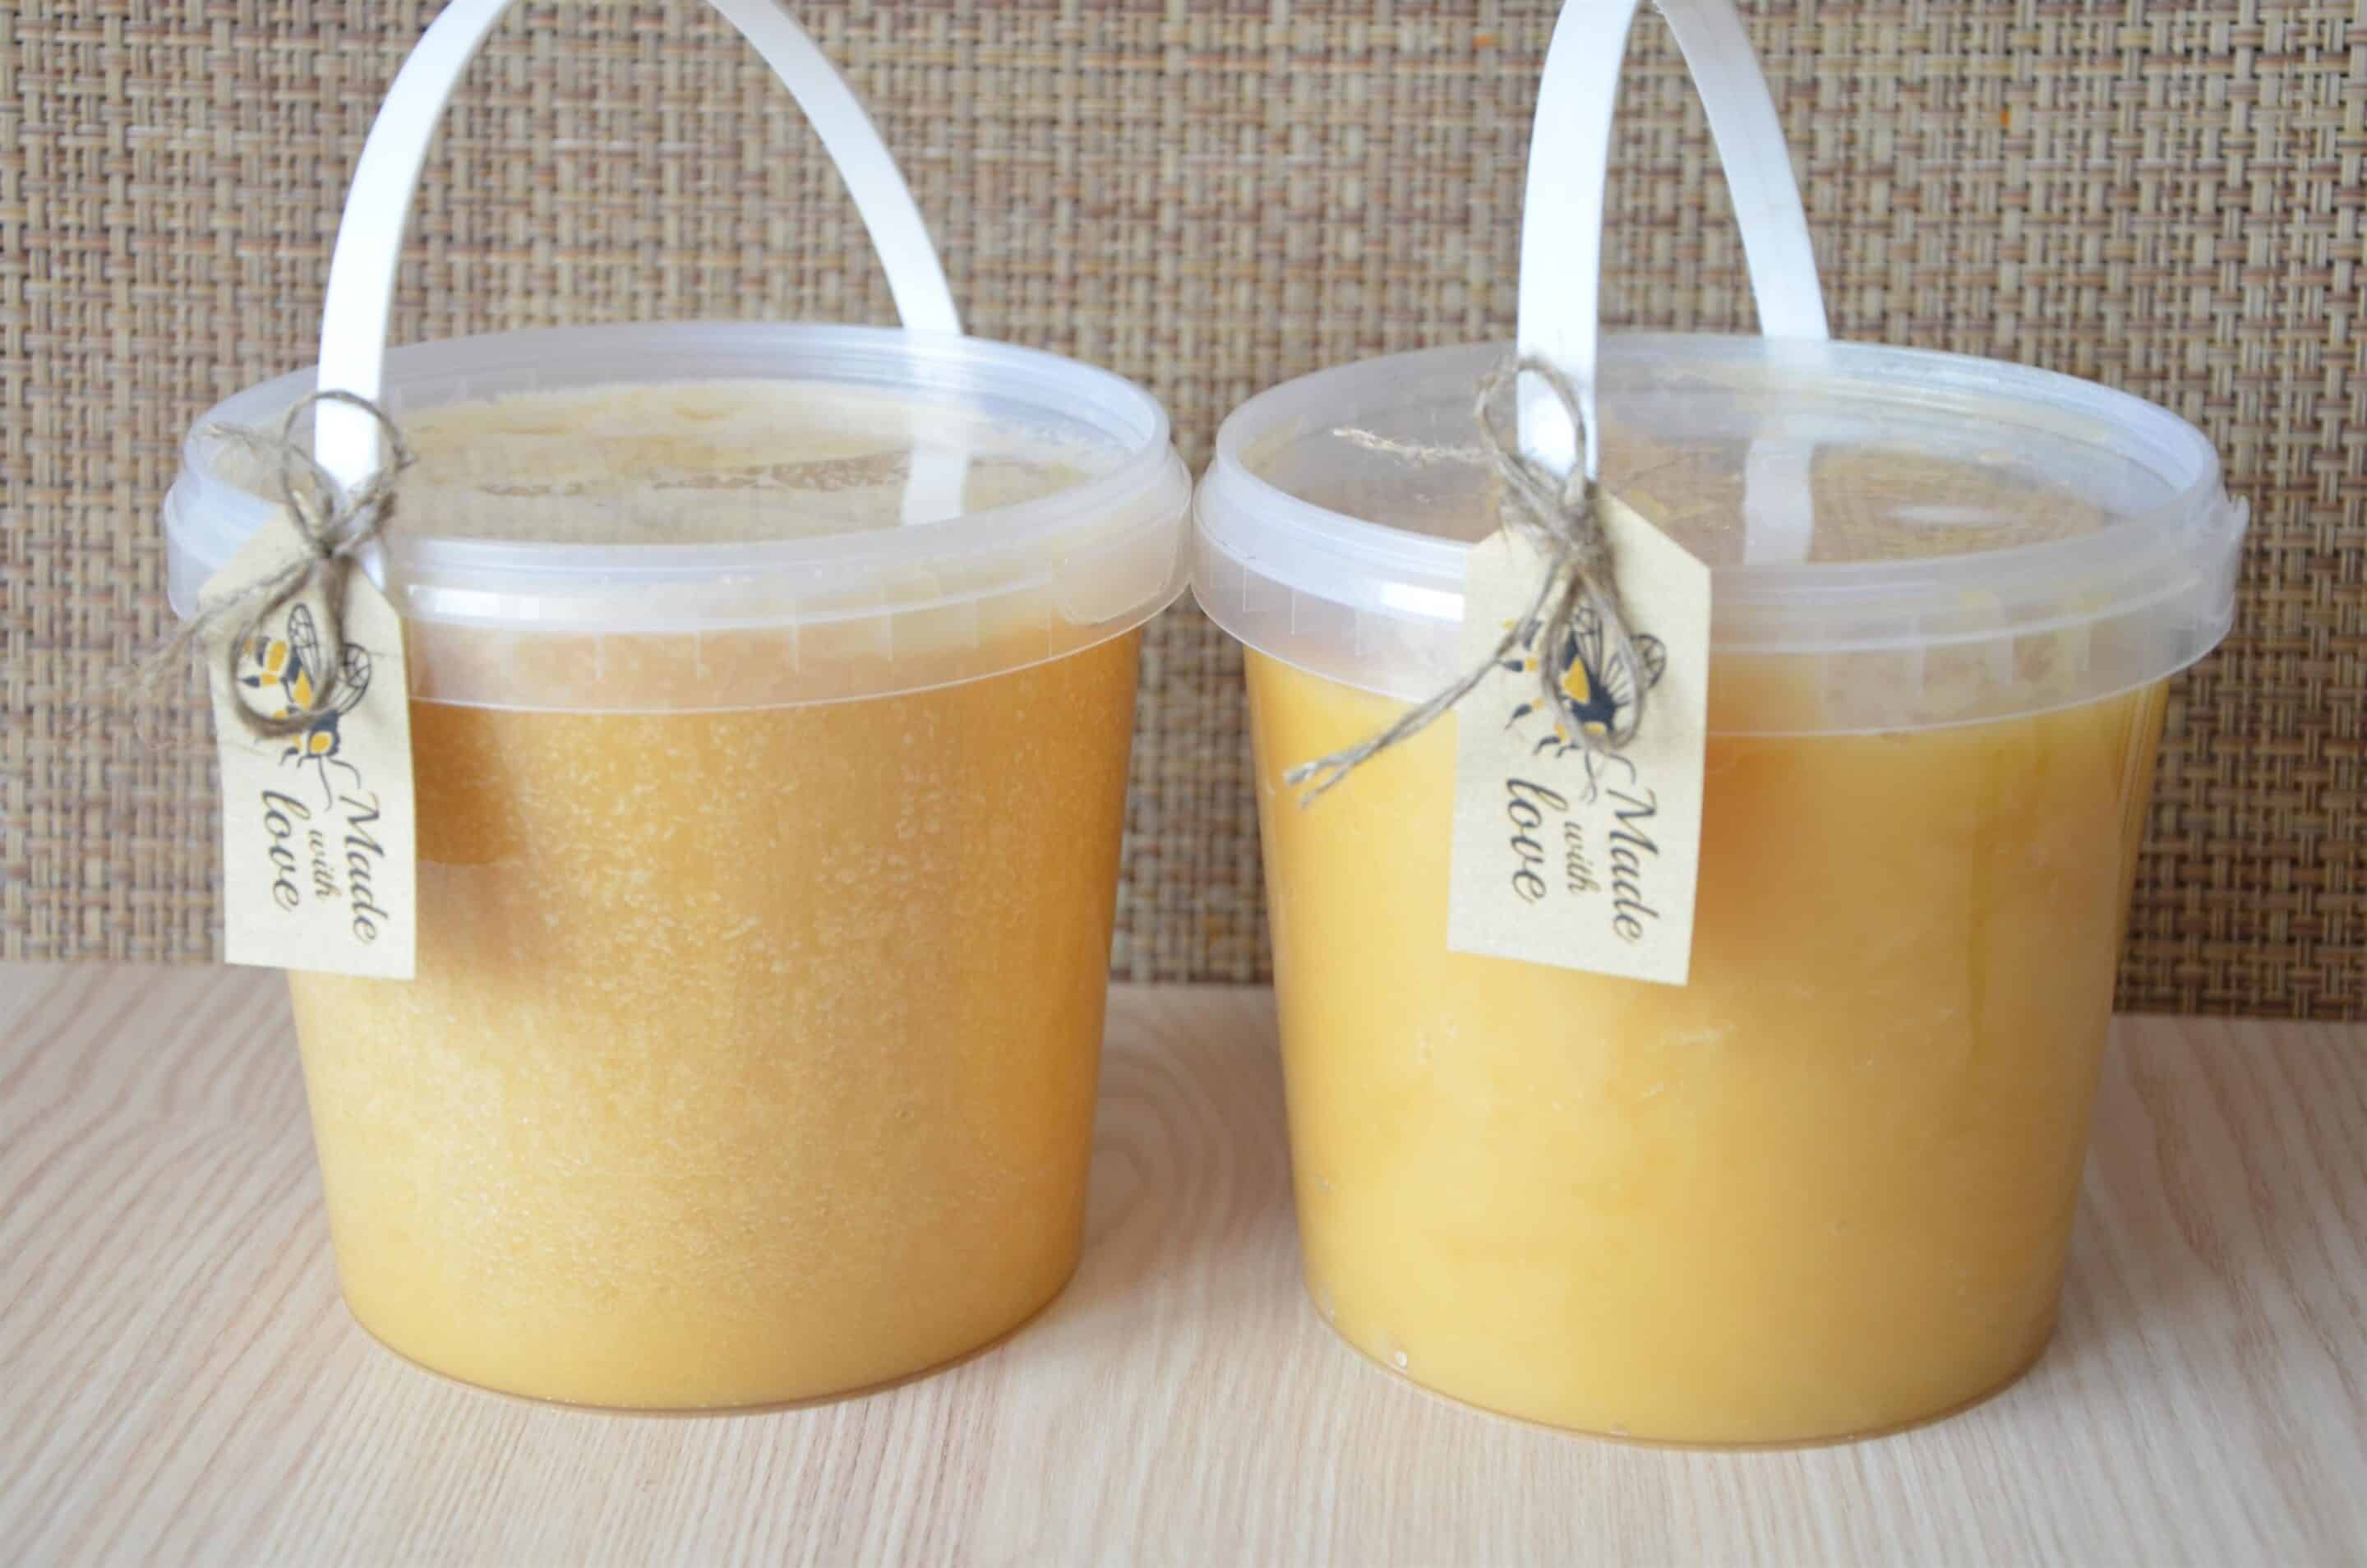 Wedding Gifts For Guests Ebay : ... Wedding Gifts For Guests Wedding Beeswax Candle Favour Guest Gifts